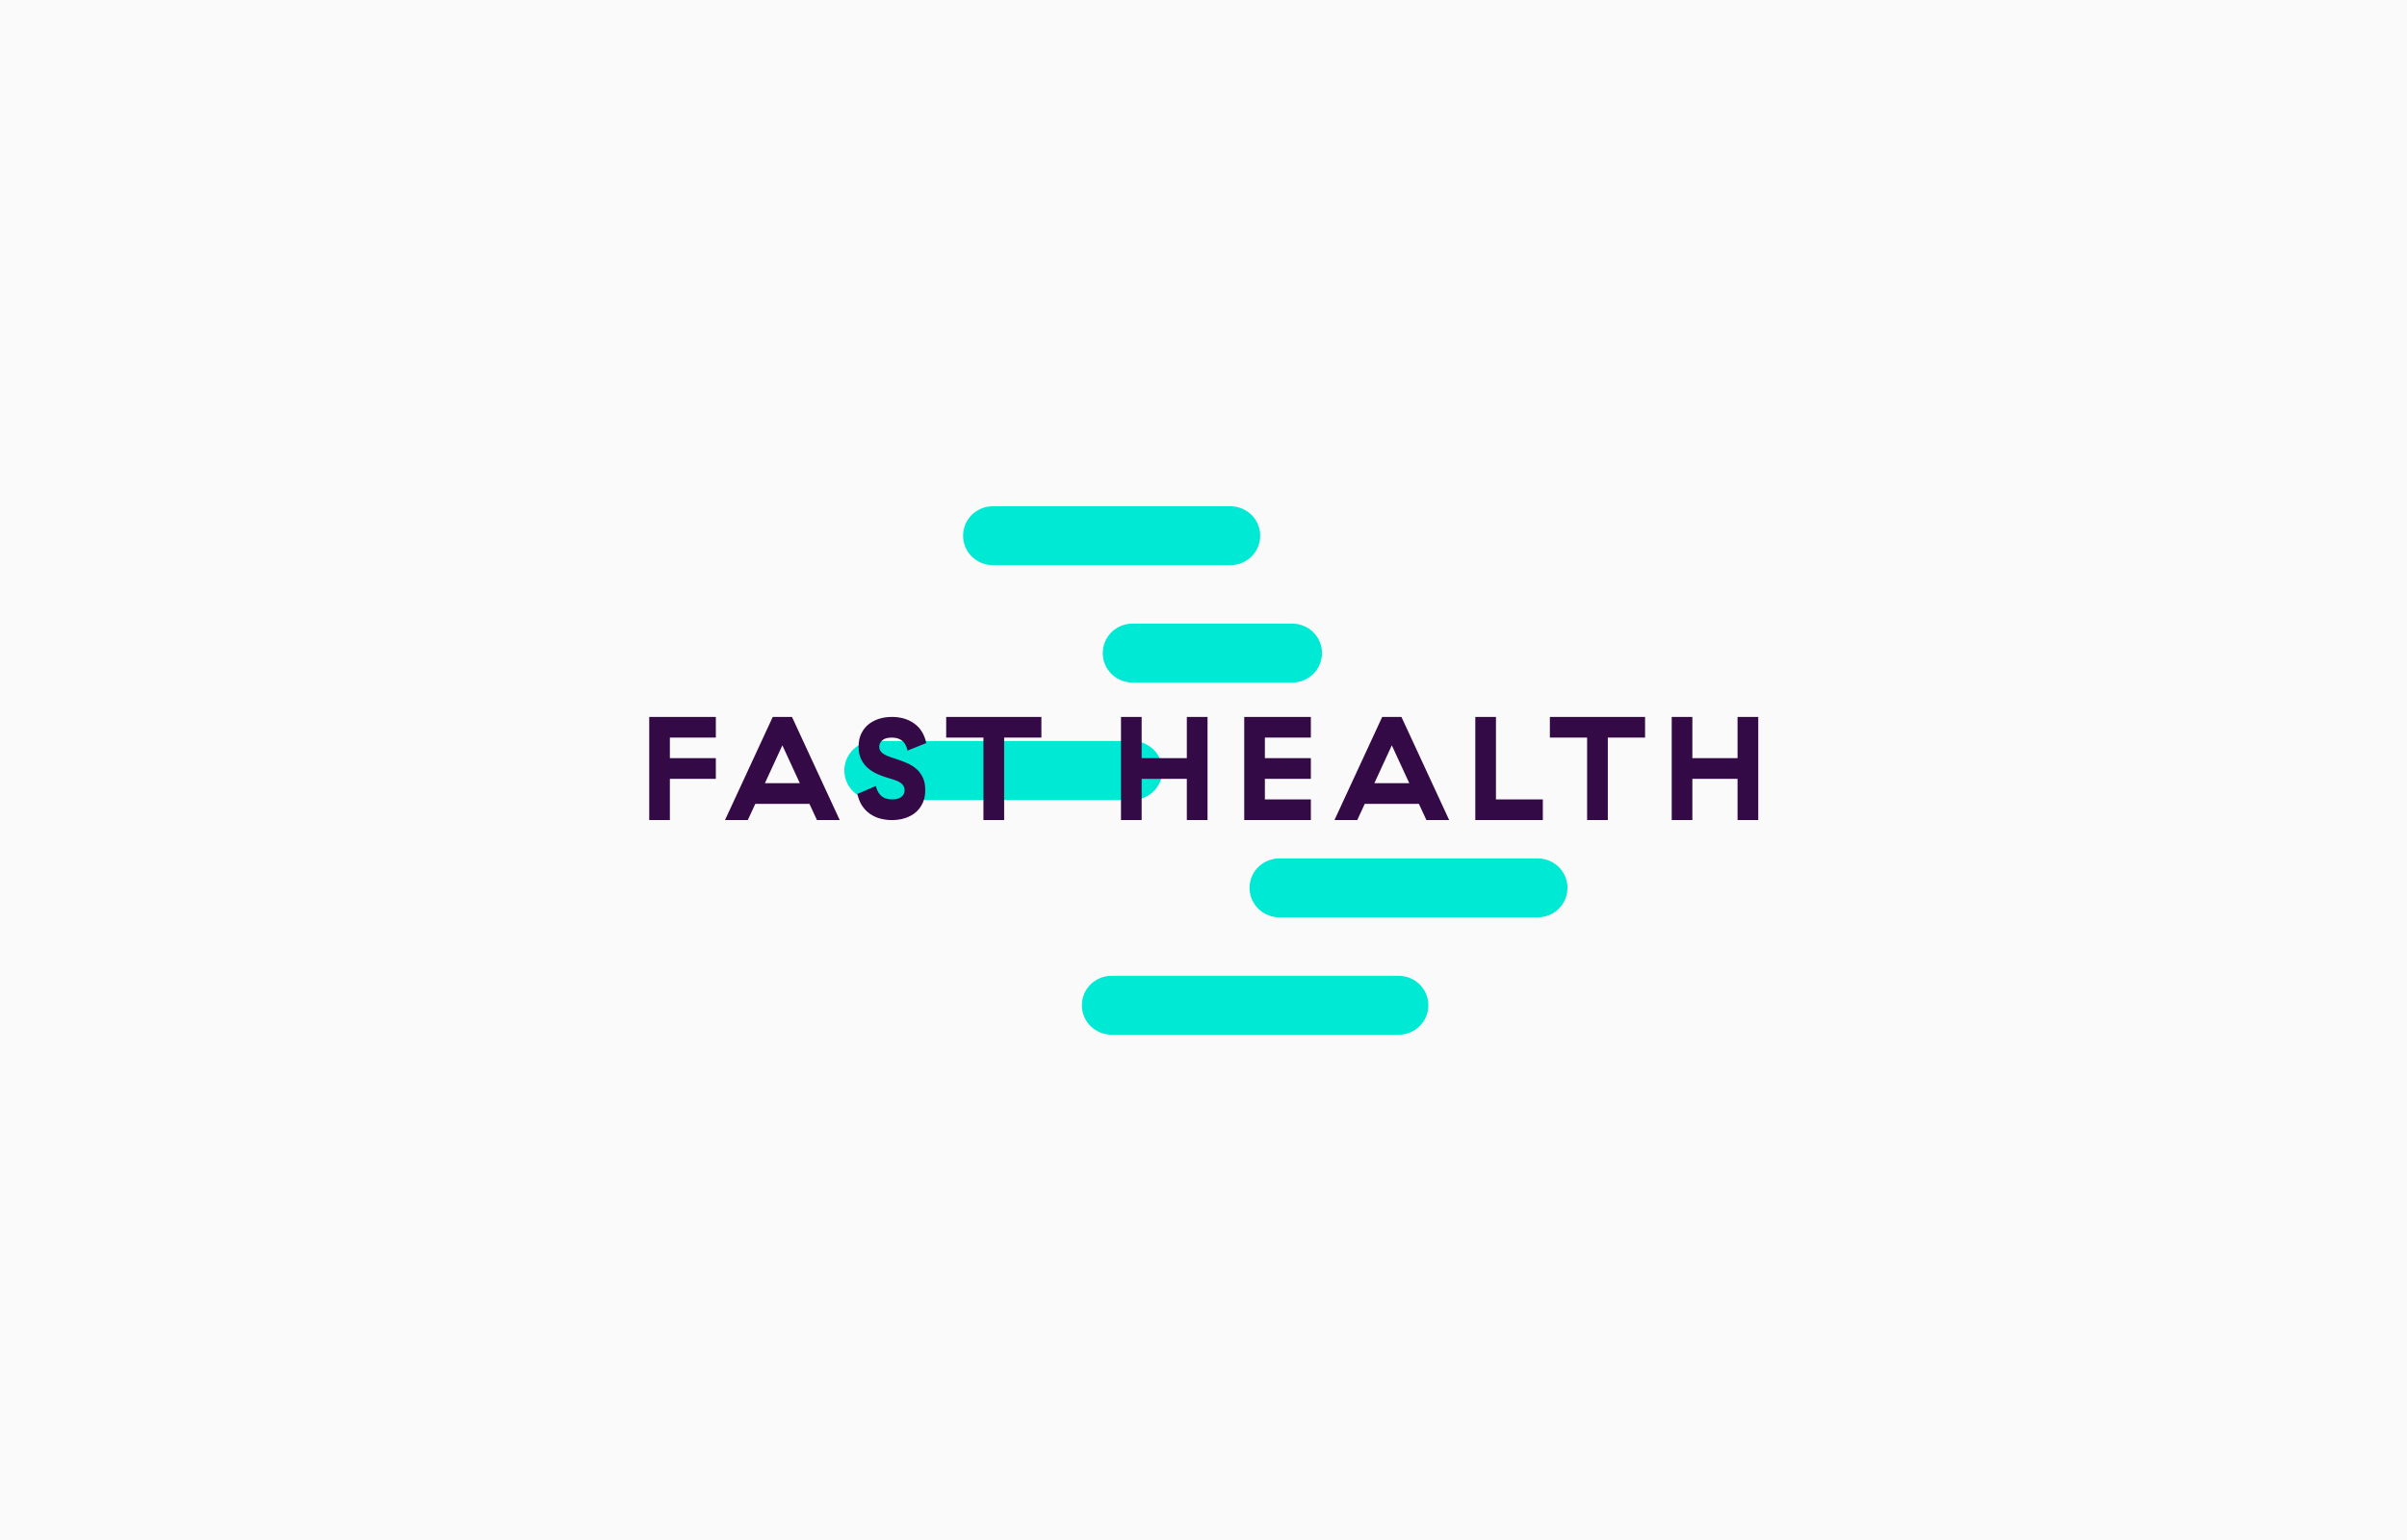 Branding and brand identity designed by Diferente for Farmaxpress, a pharmacy based in Santo Domingo, Domenican Republic, that provides fast health anywhere and anytime.